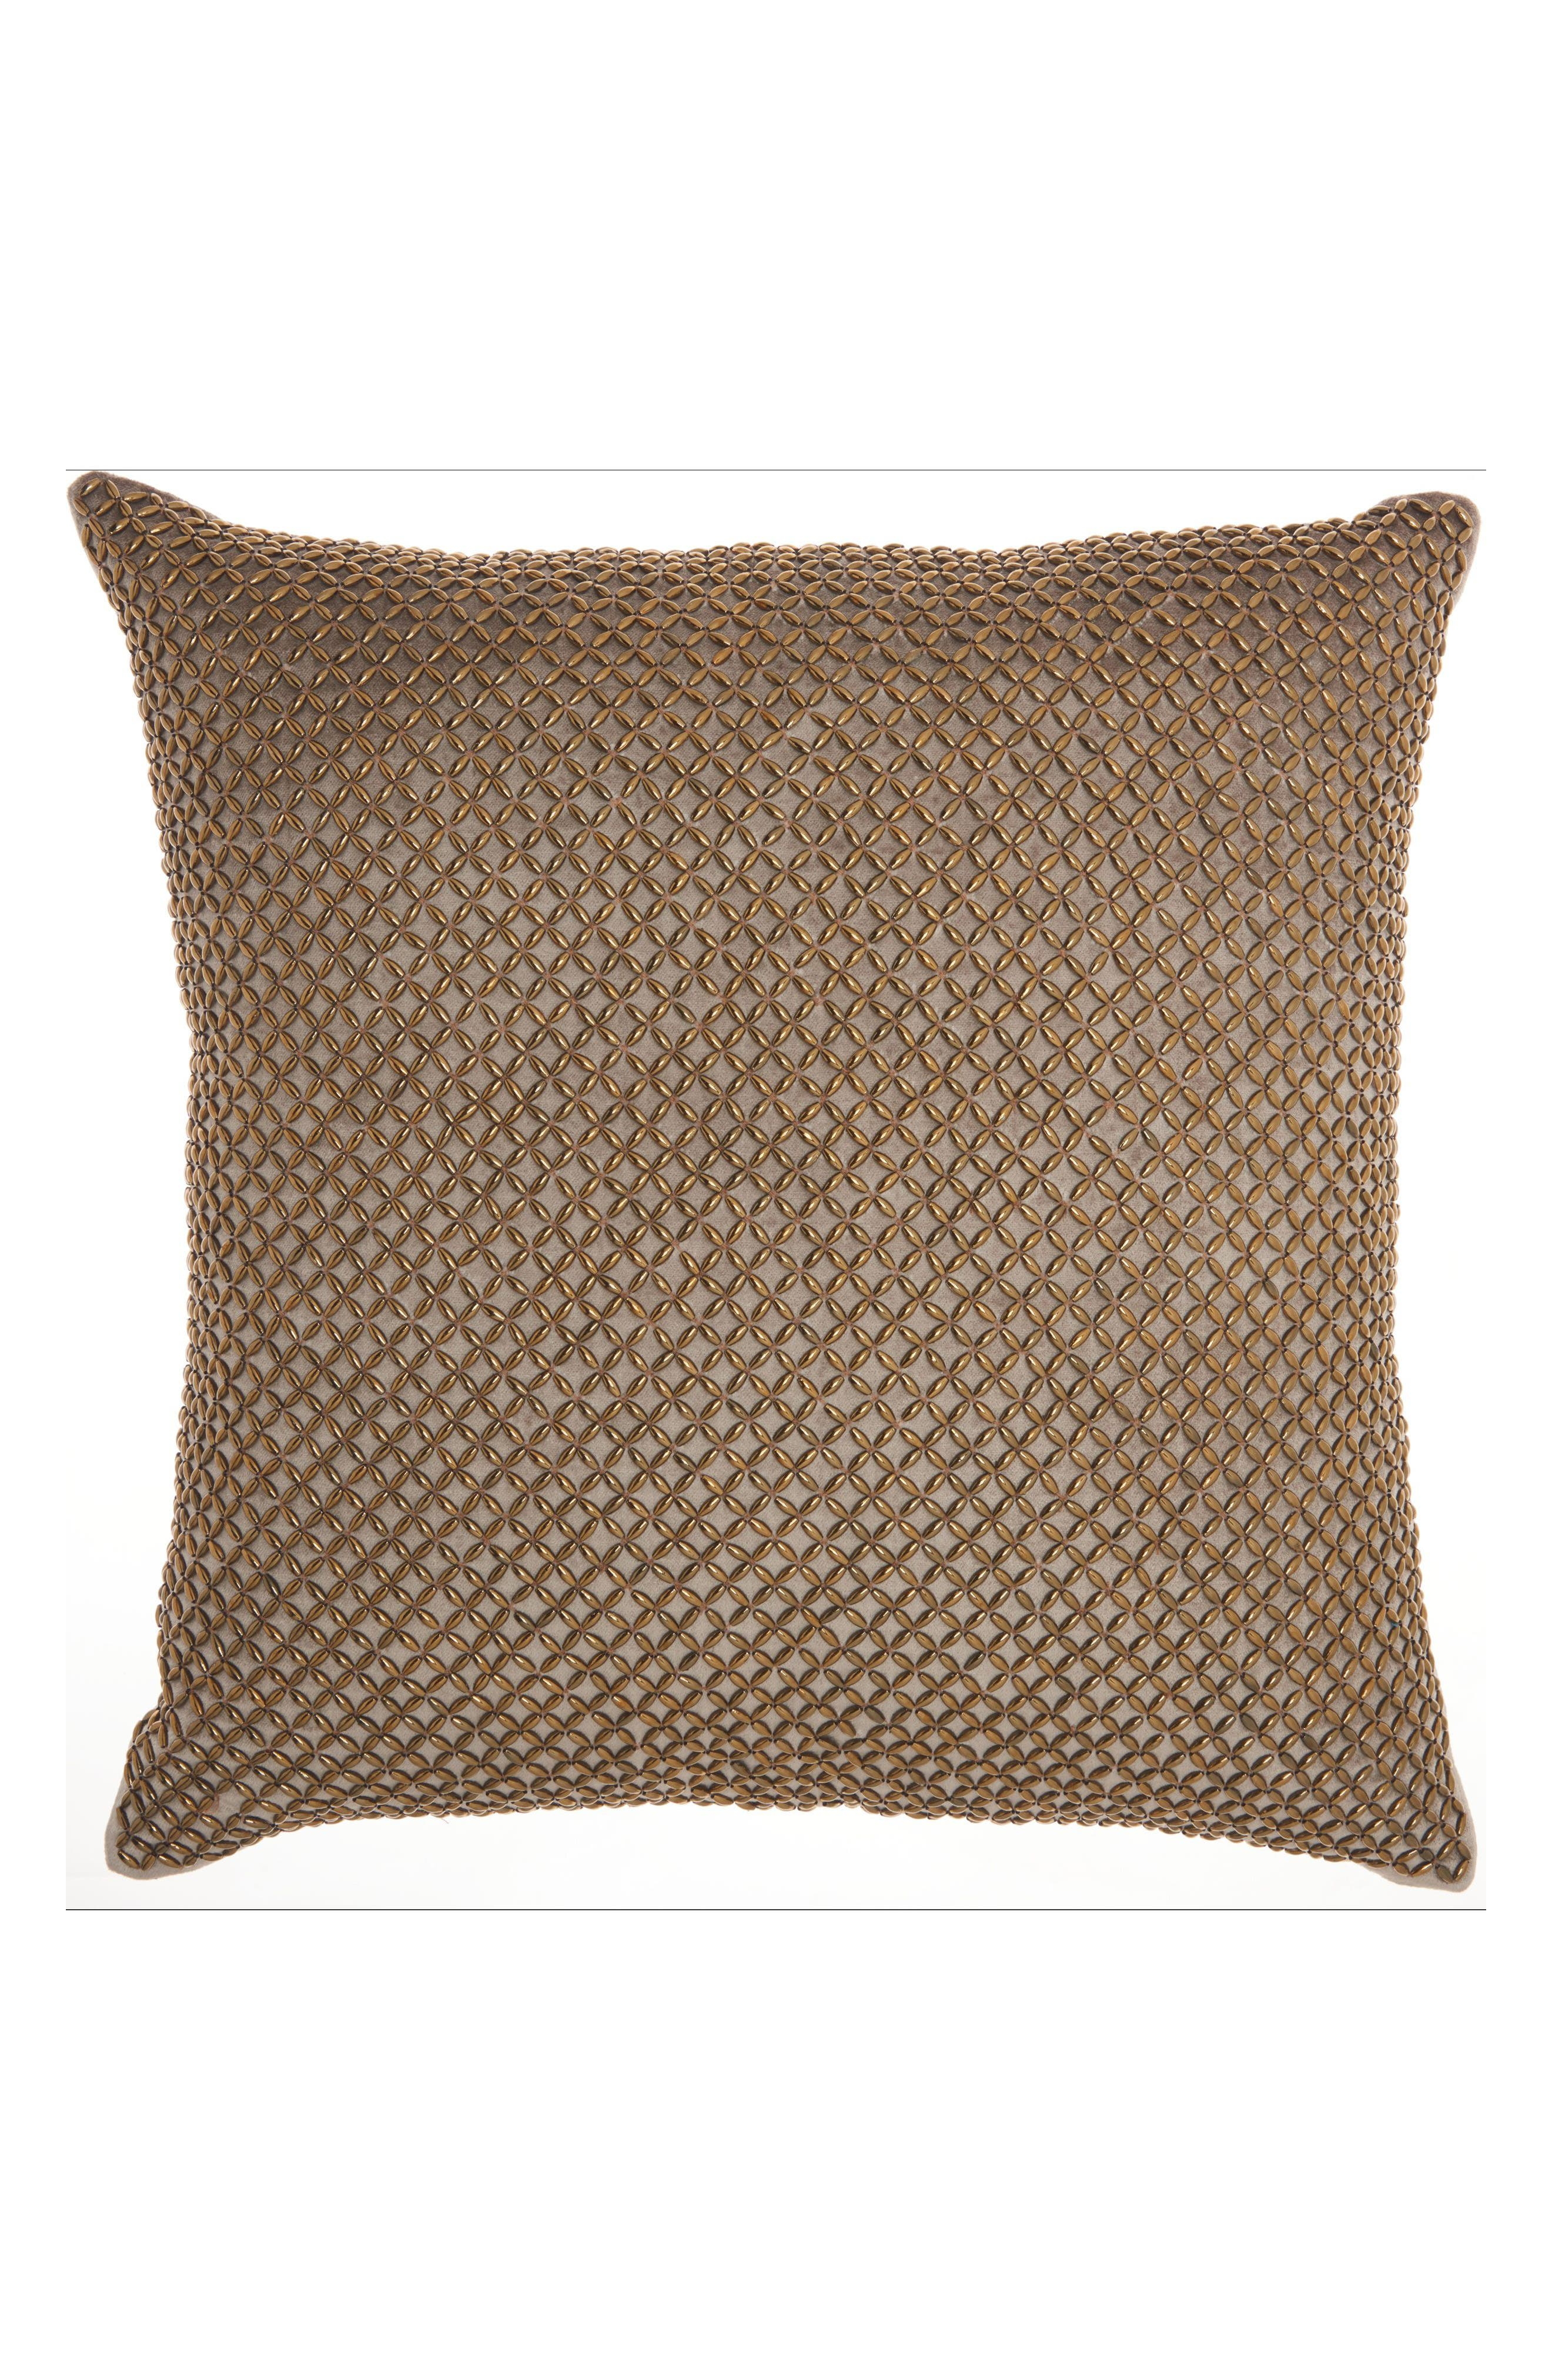 Cobble Jewel Accent Pillow,                         Main,                         color, Taupe